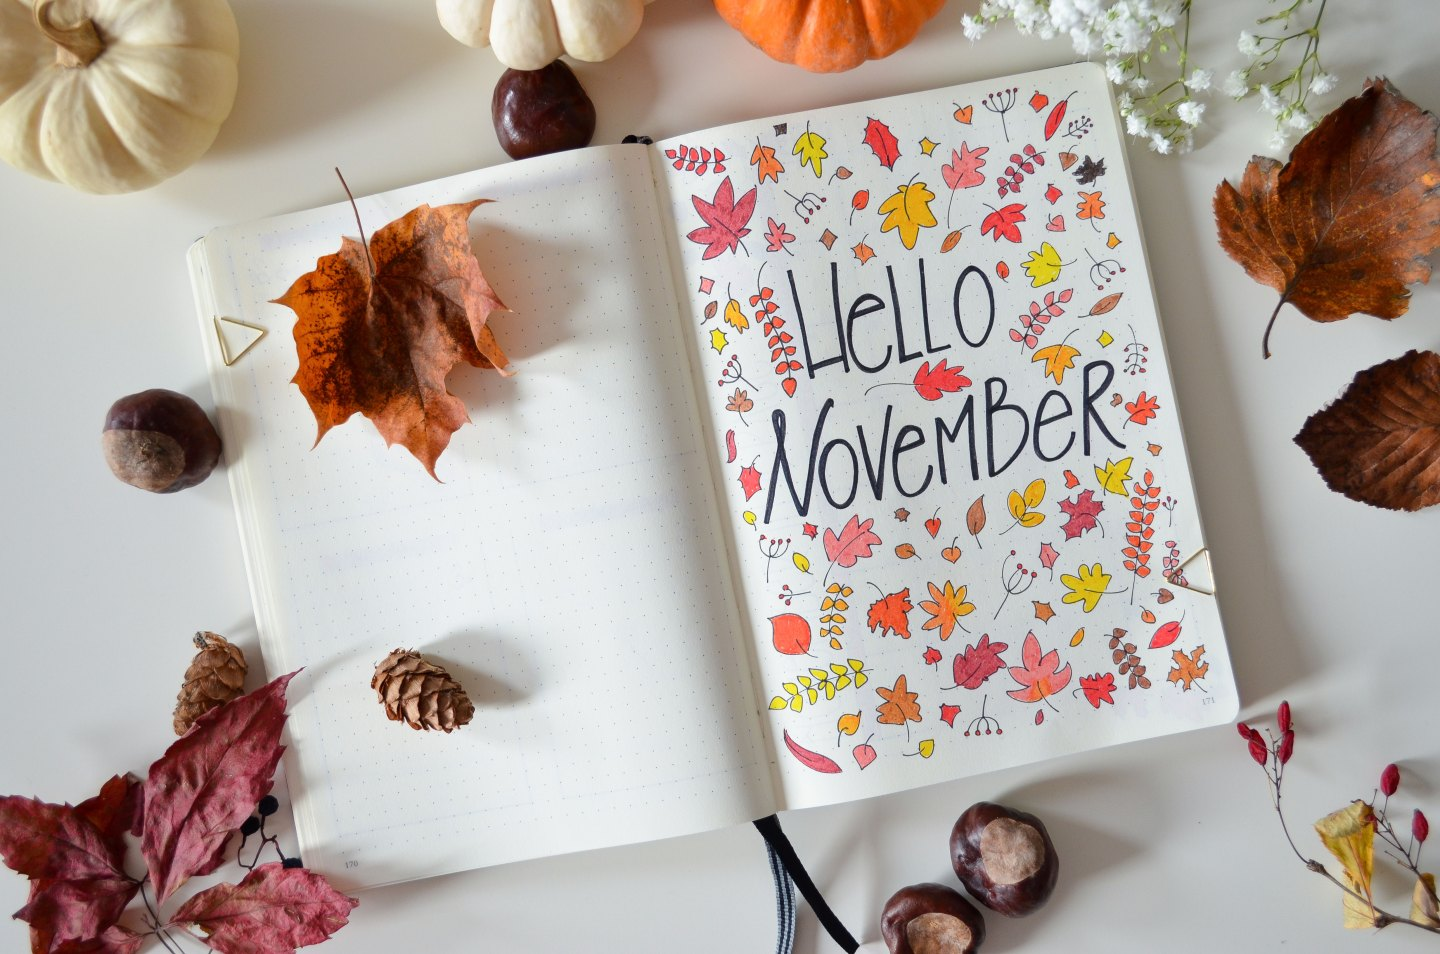 Lifestyle | November Bujo: Autumn Inspired Bullet Journal